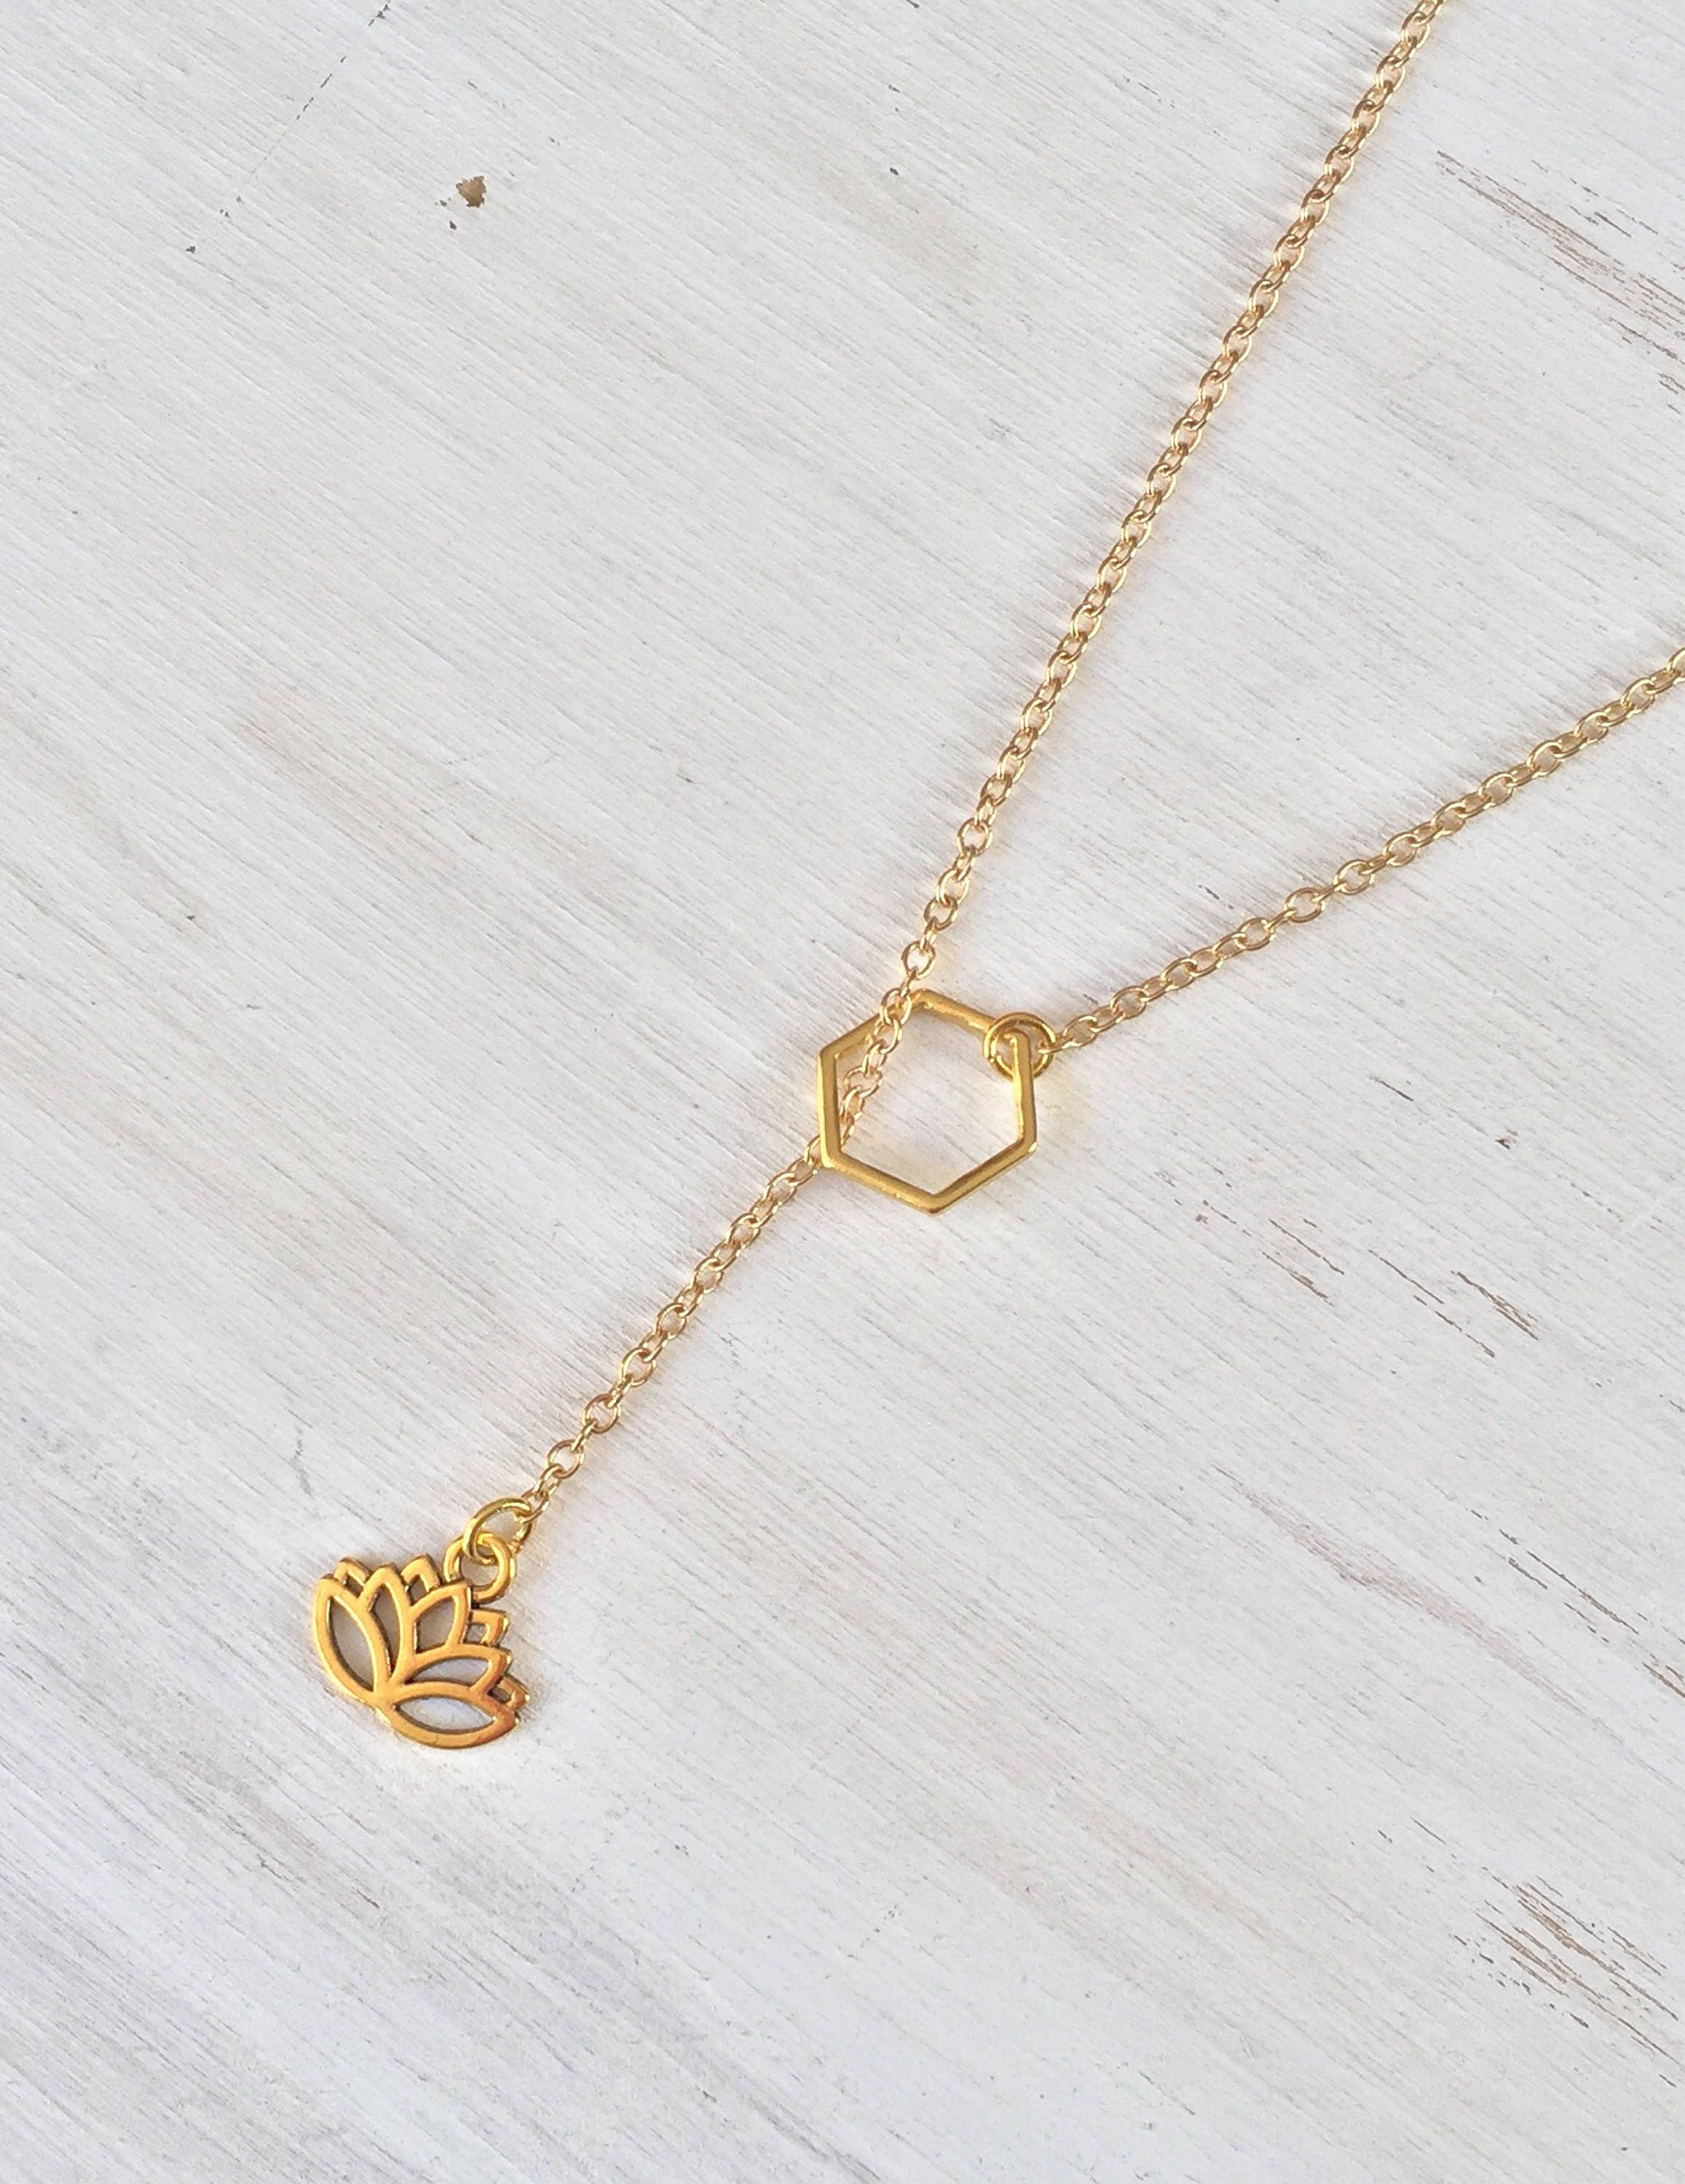 Gold lotus flower slip on lariat necklace y necklace long necklace gold lotus flower slip on lariat necklace y necklace long necklace delicate jewelry gold jewelry flower jewelry gift for her izmirmasajfo